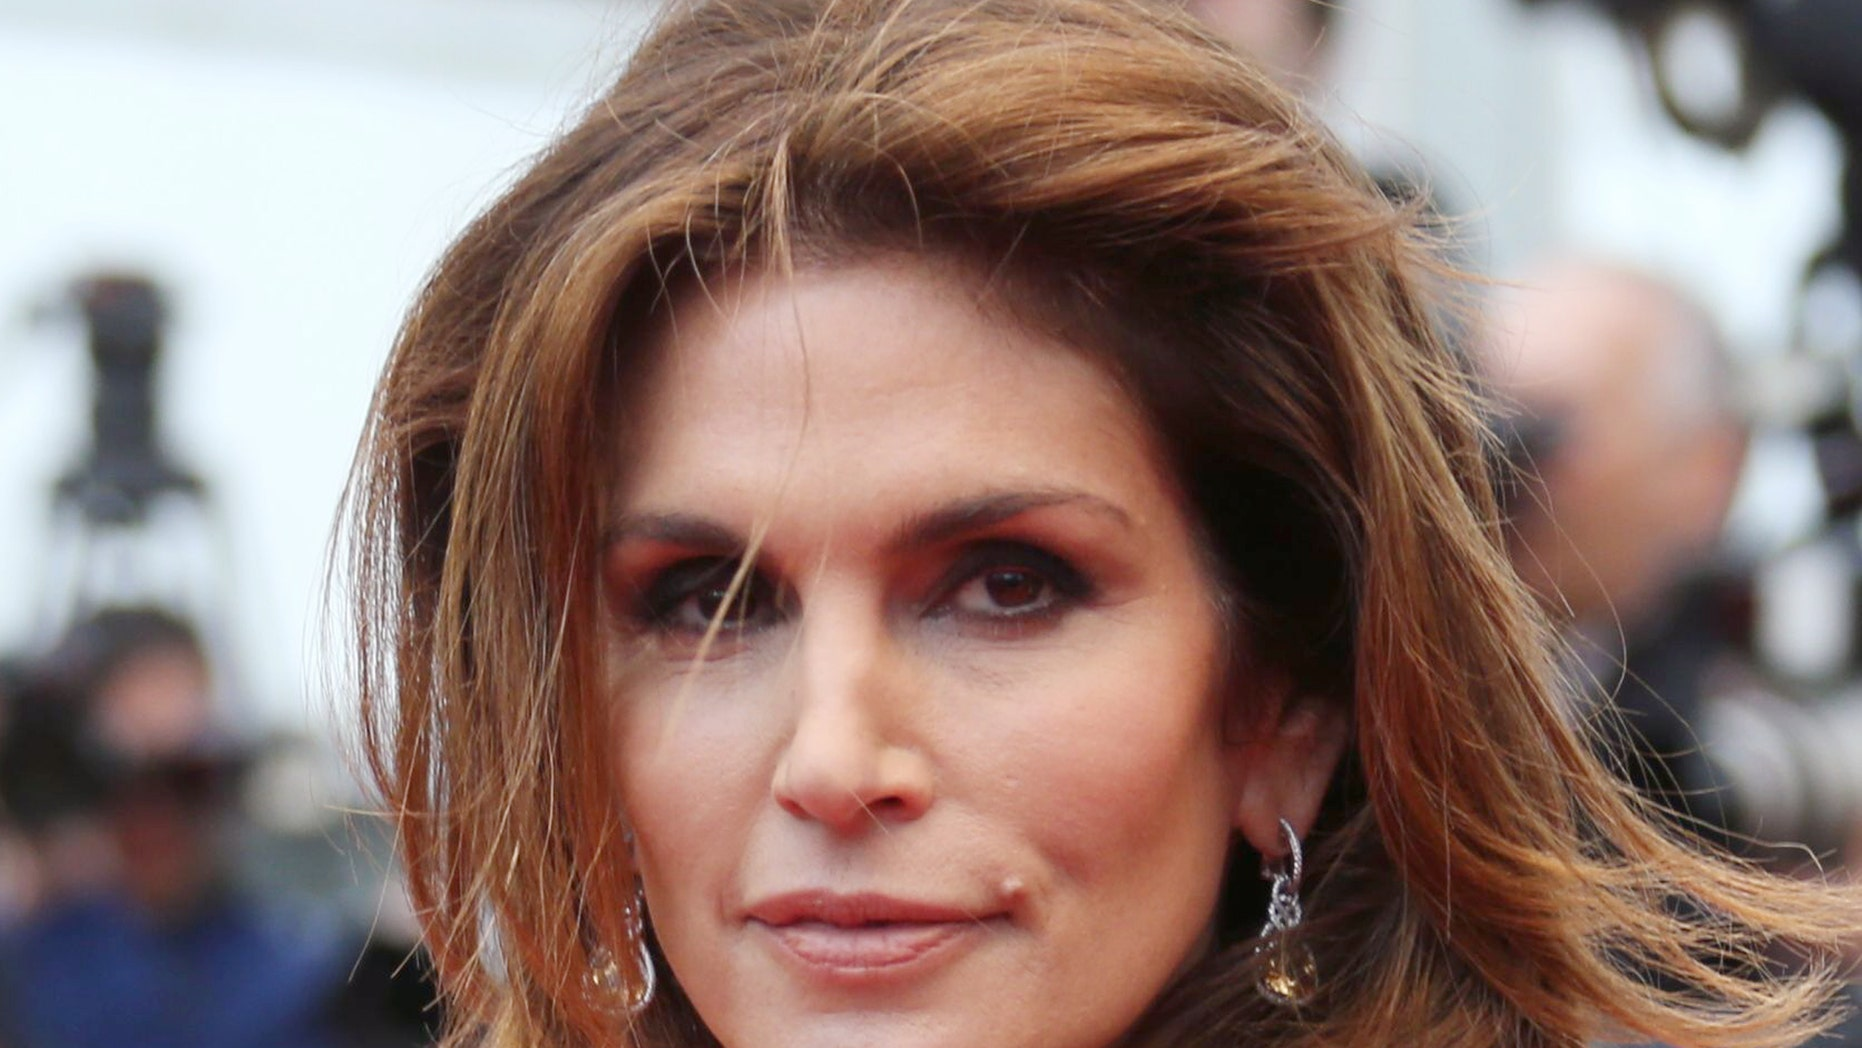 May 15, 2013. Model Cindy Crawford poses on the red carpet at the Cannes Film Festival.